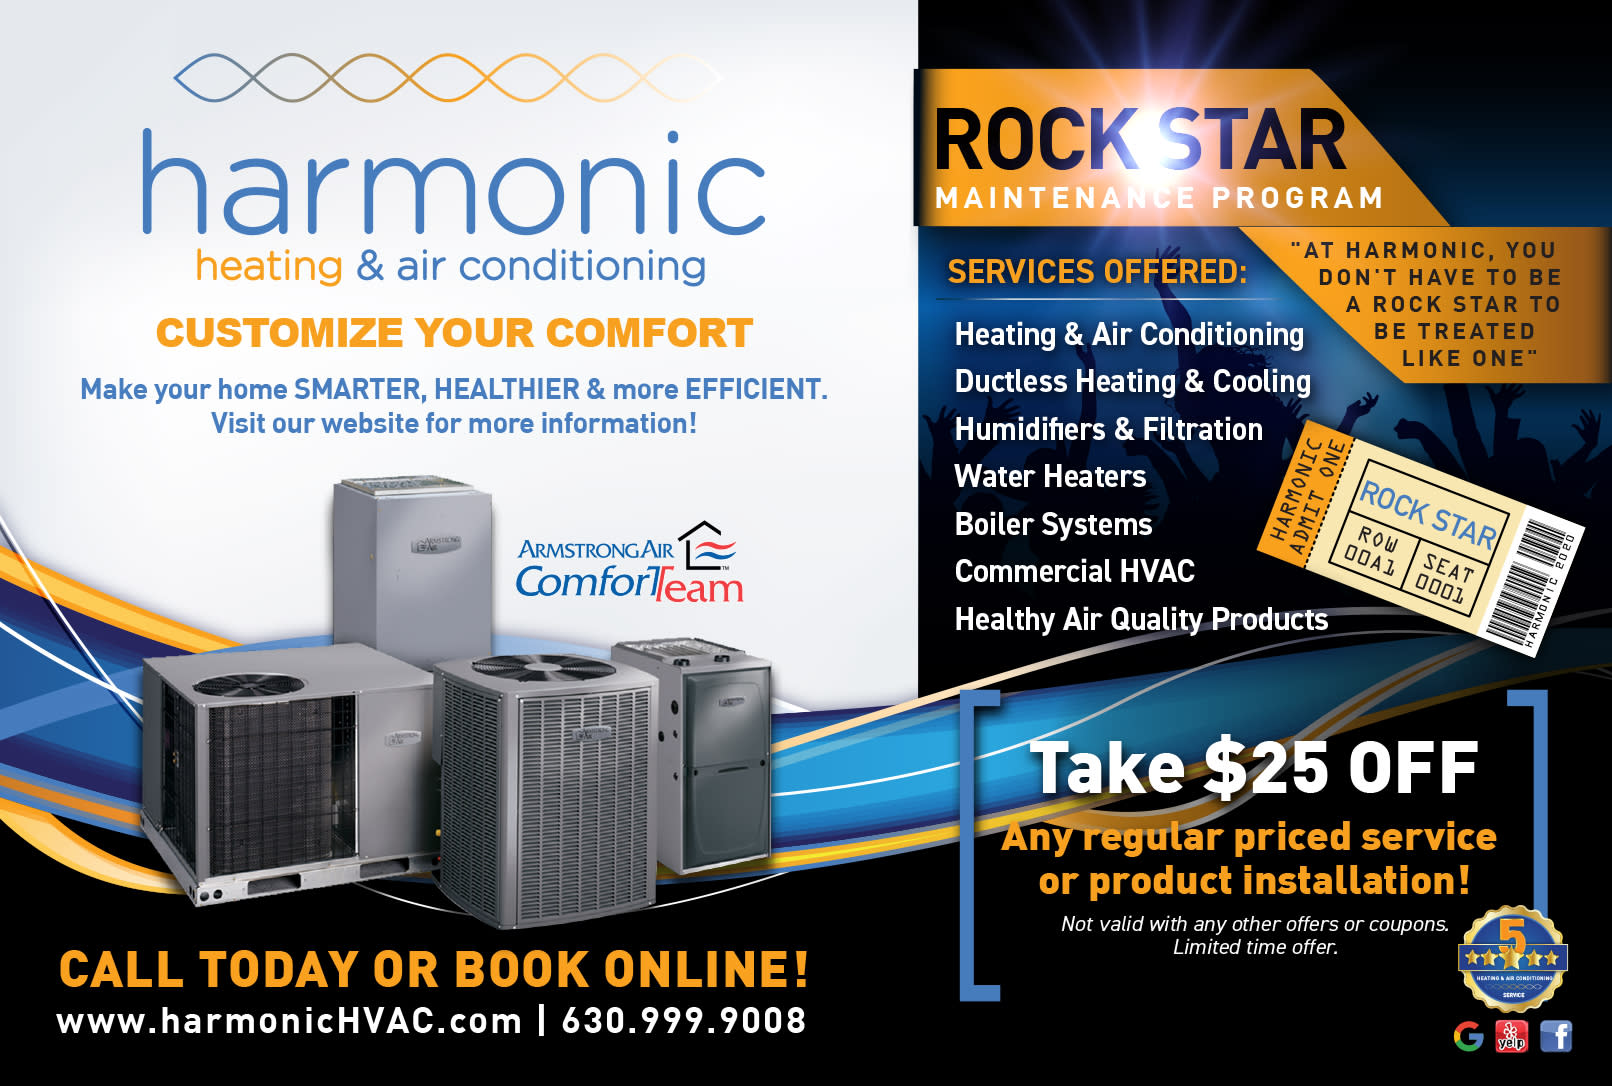 Rock*Stars SAVE BIG on Fall / Winter Furnace & Spring / Summer AC Cleaning, Repair Service, & Replacement